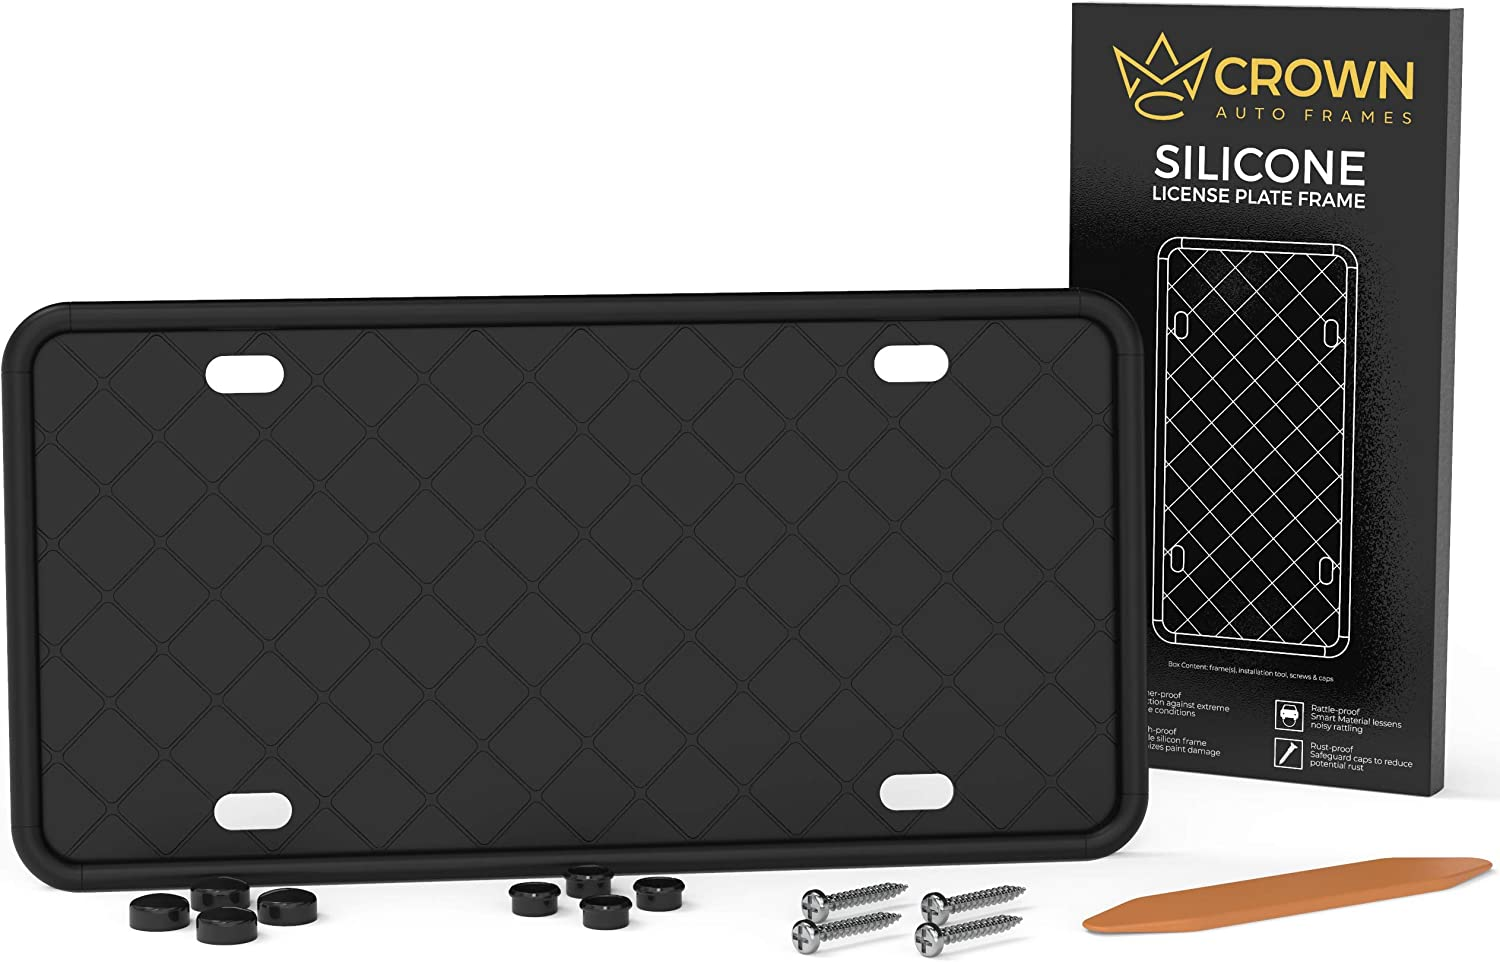 Crown Auto Frames Silicone License Plate Frame - Black License Plate Frame with Drainage Holes and Screws | Front or Rear License Plate Holder